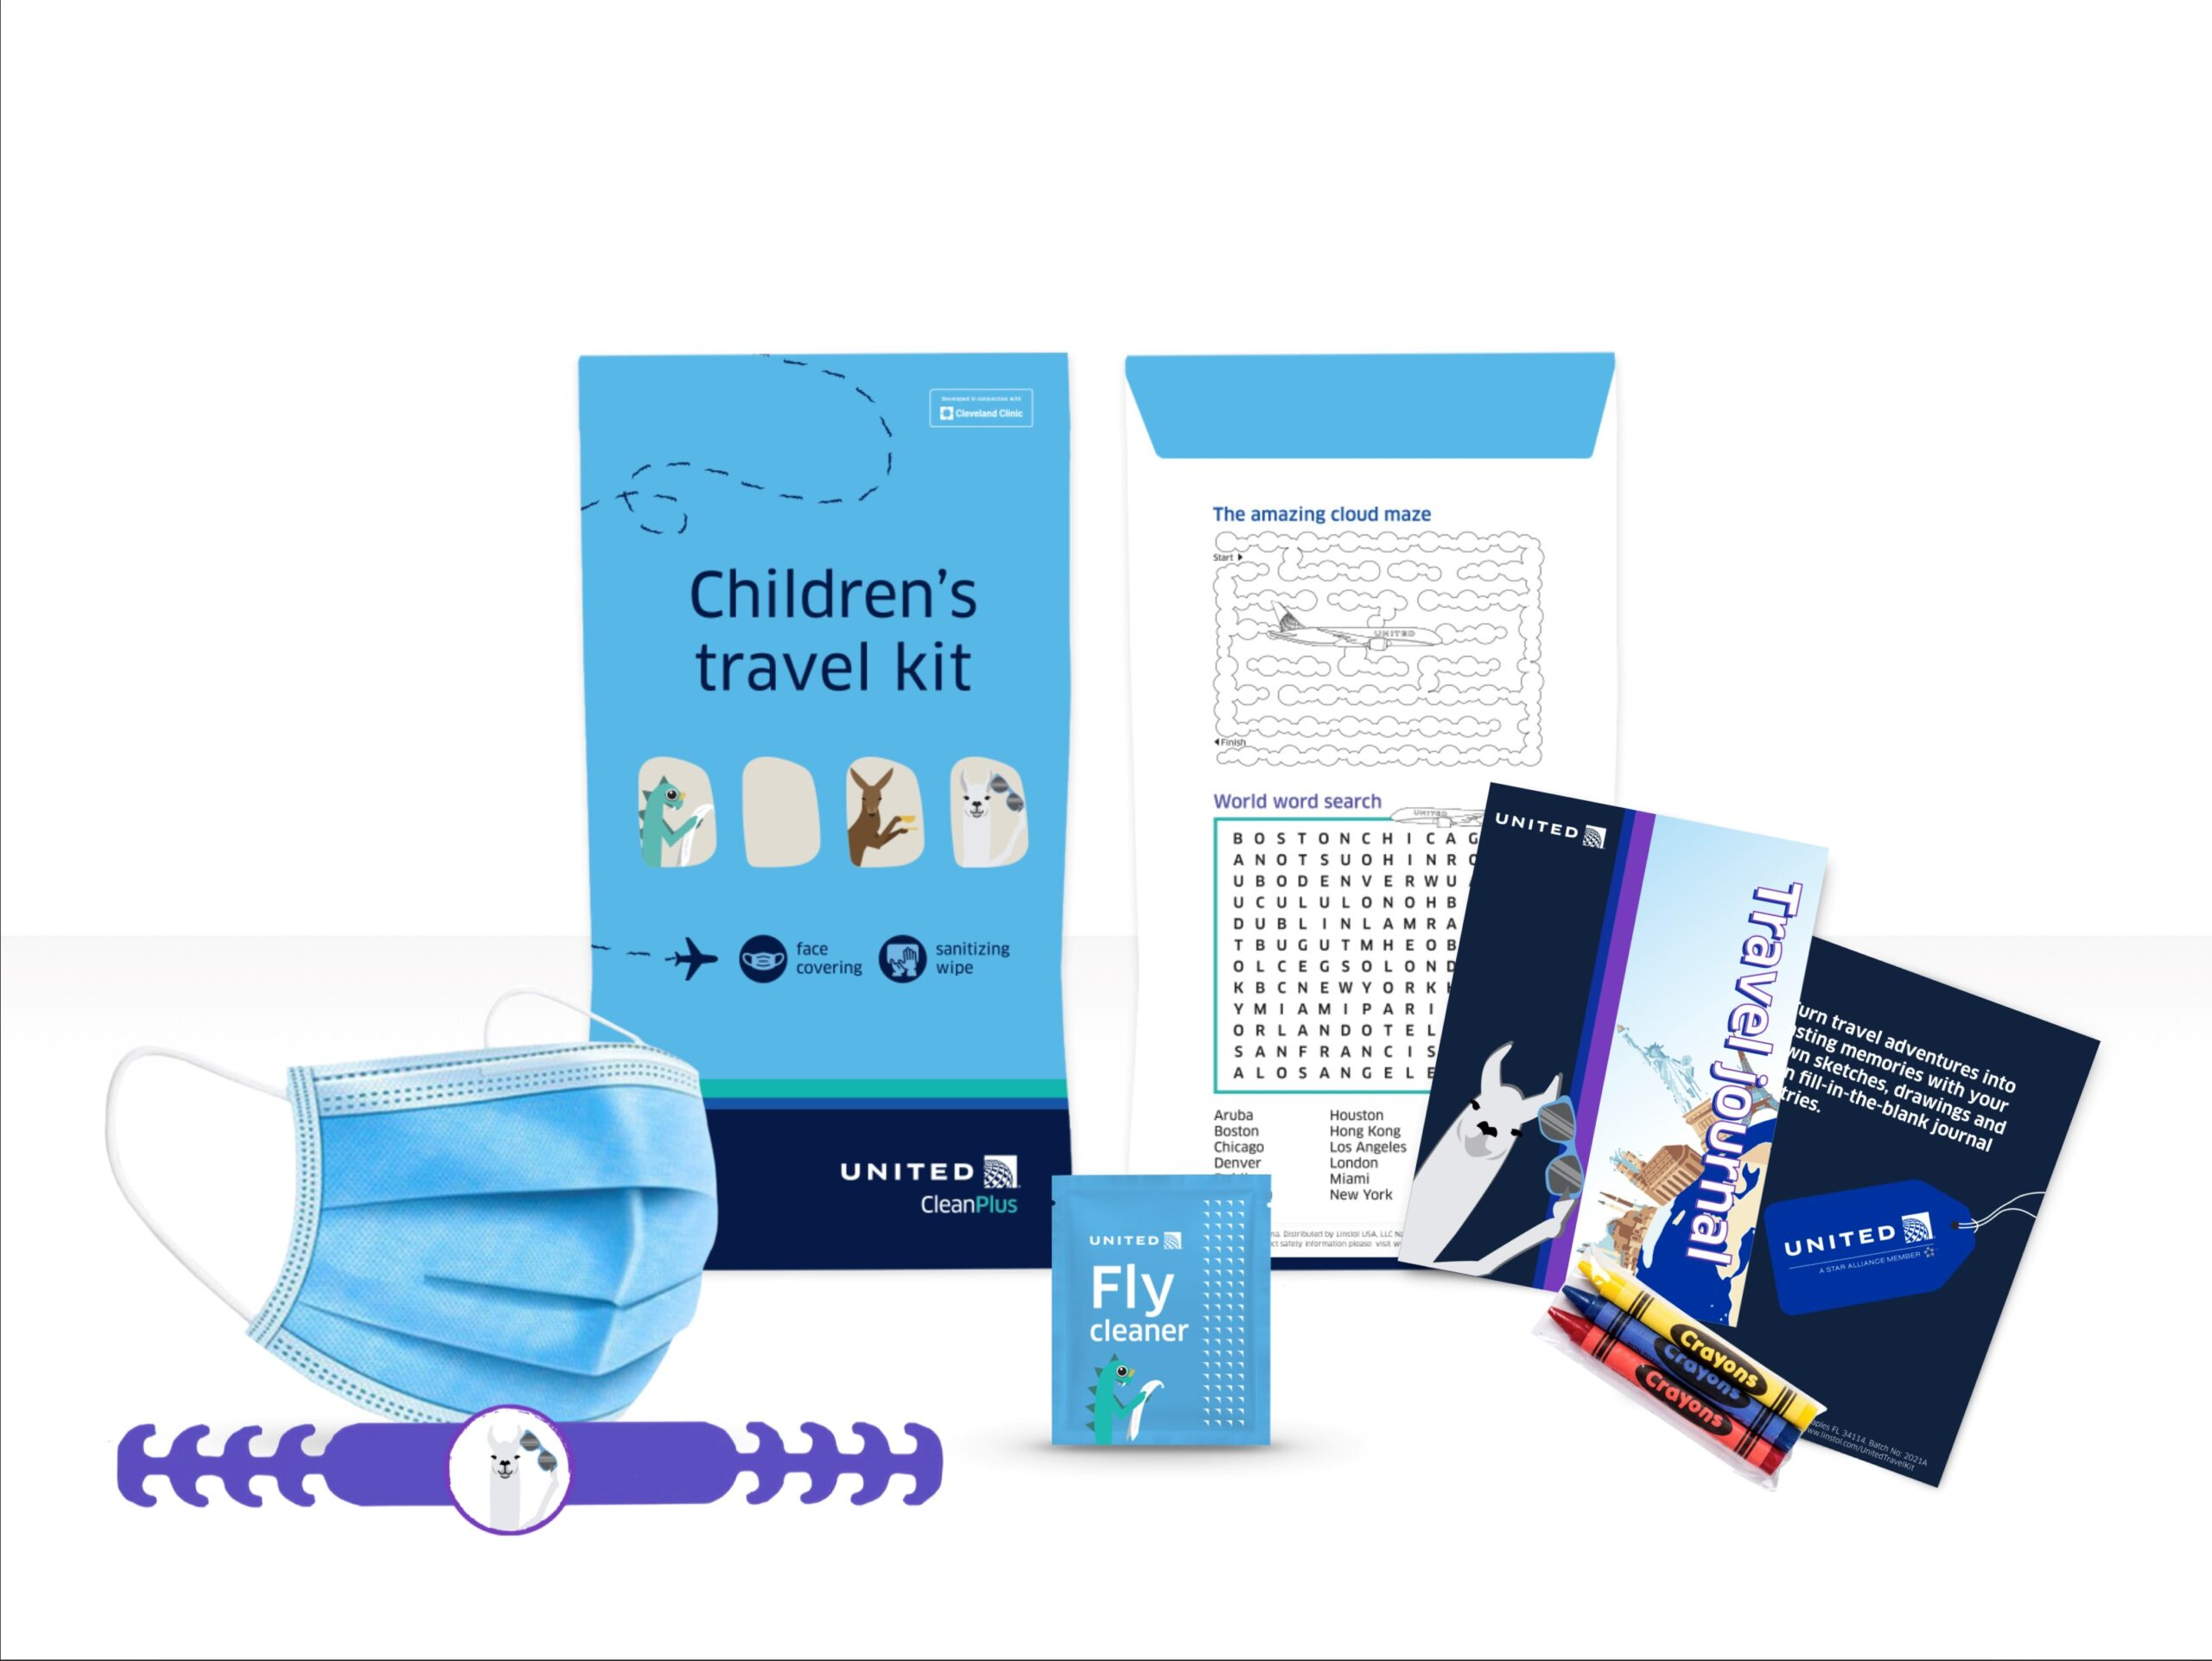 United Airlines childrens activity kit including Mask with mask sizer to adjust the fit to the child's head Visual instructions on how to wear mask and sizer with a friendly message to parents/guardians Travel journal activity book with crayons Sanitizing wipe Eco-friendly, recyclable paper bag